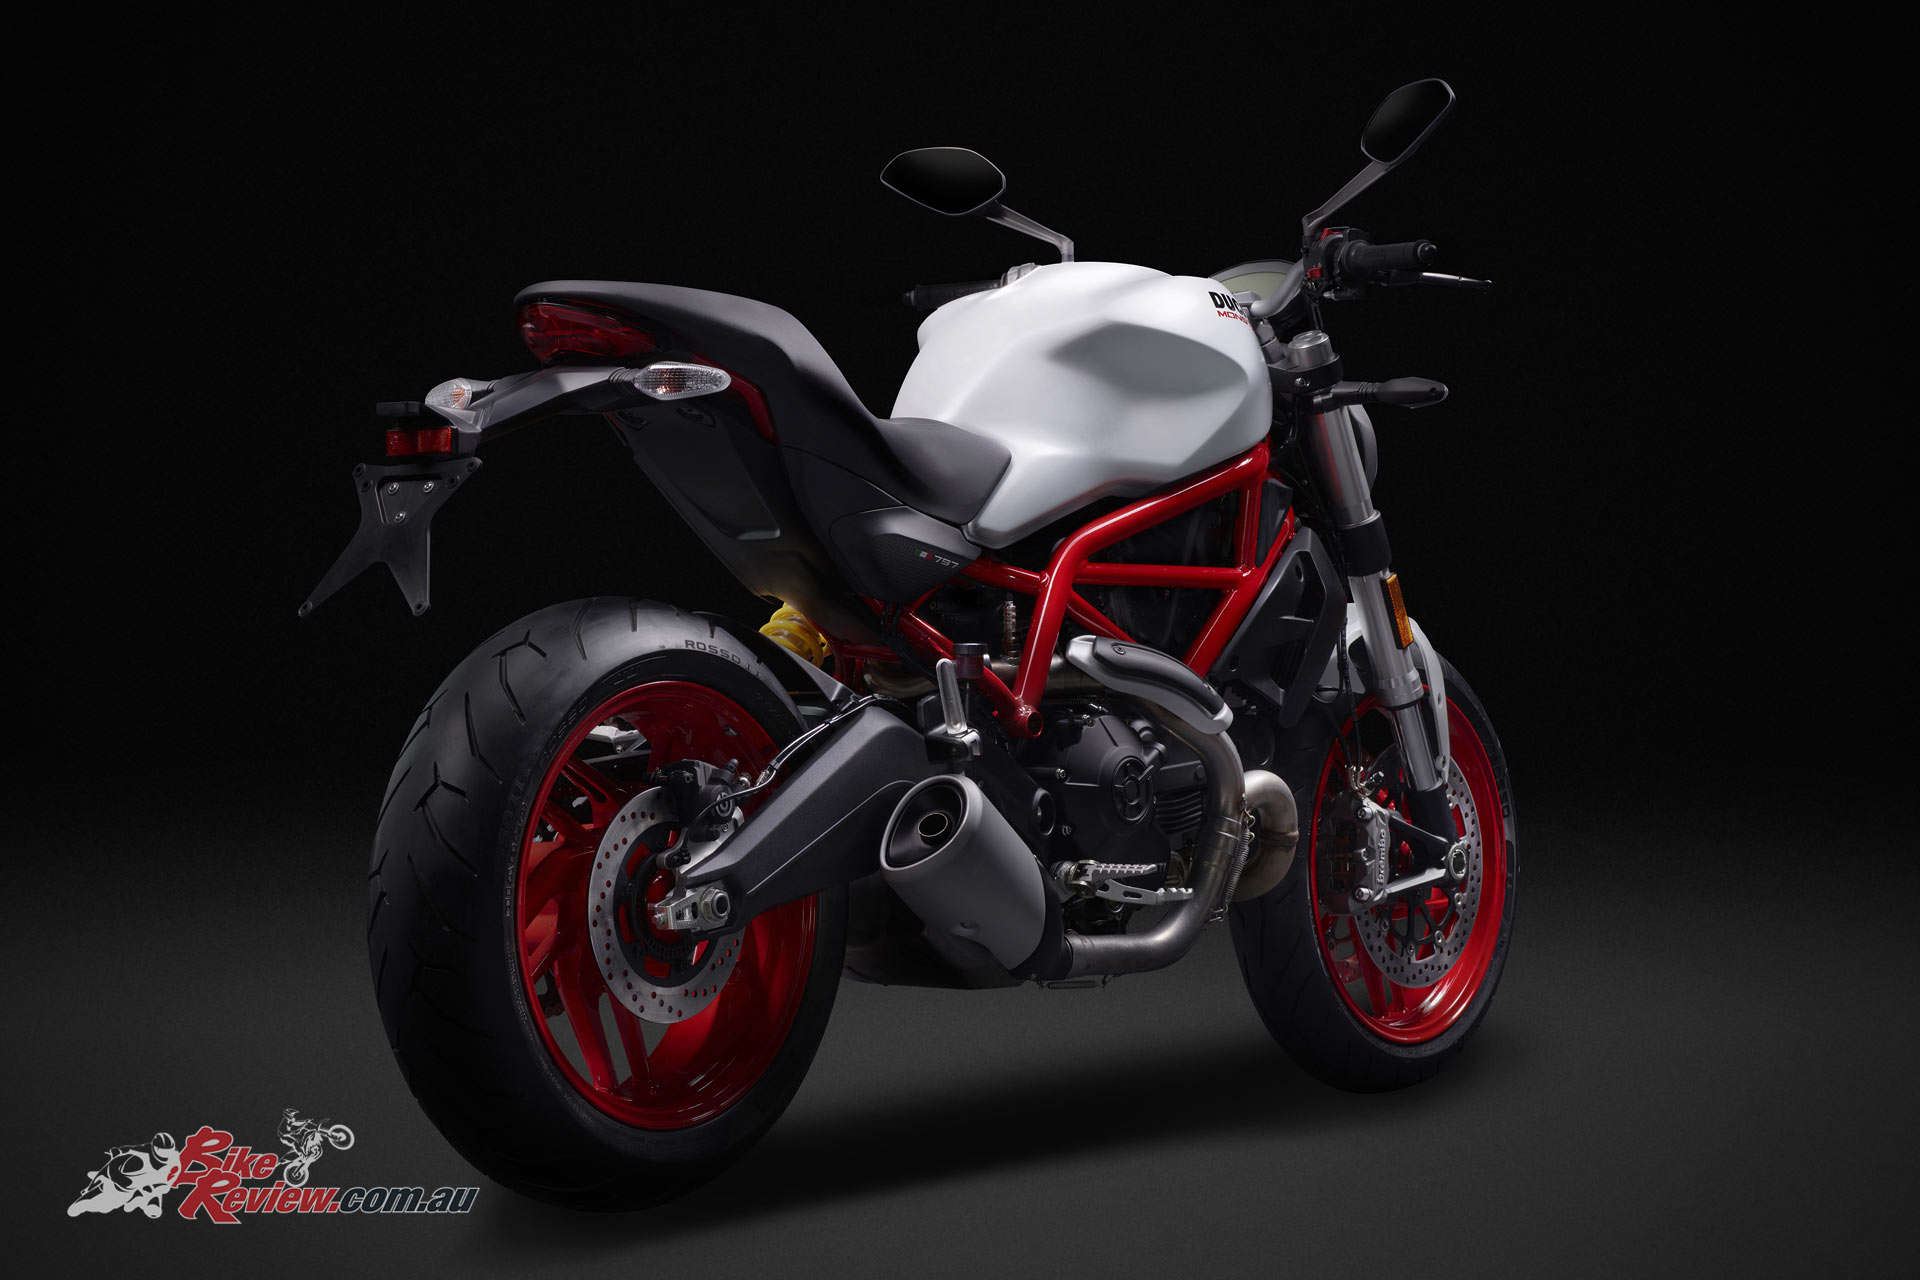 2017 Ducati Monster 797 revealed - Bike Review